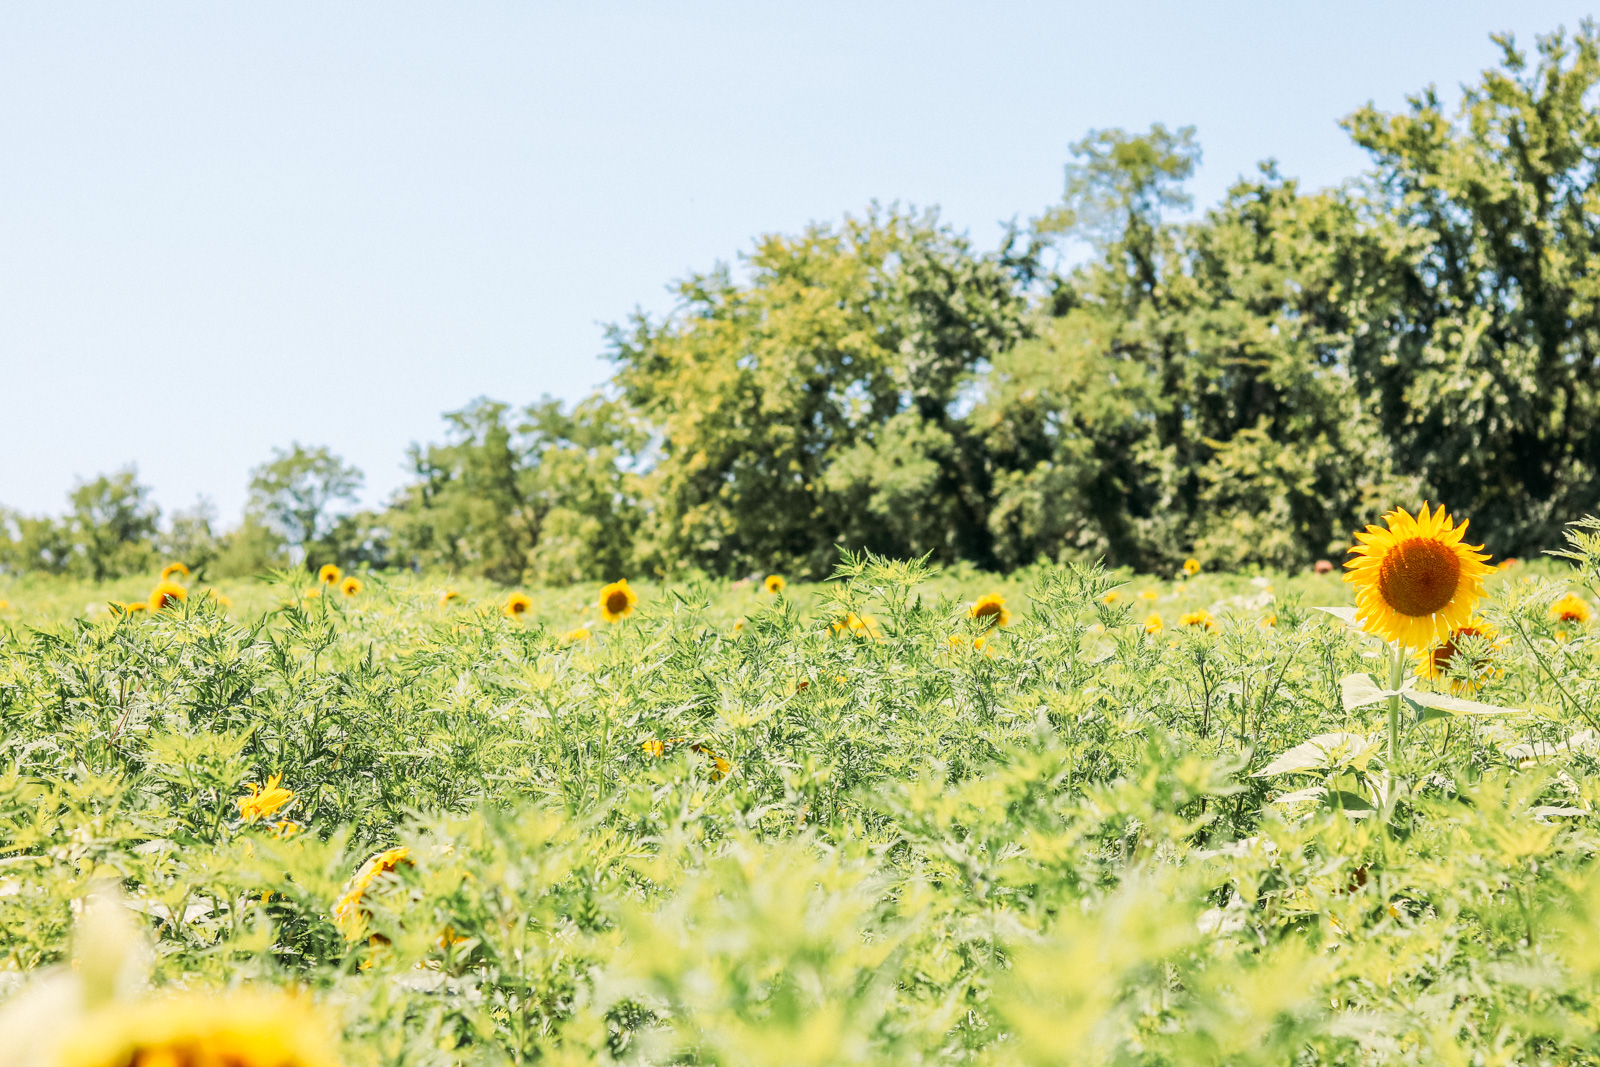 Vineyard and sunflower field exploring for the perfect girls day out and brunch alternative